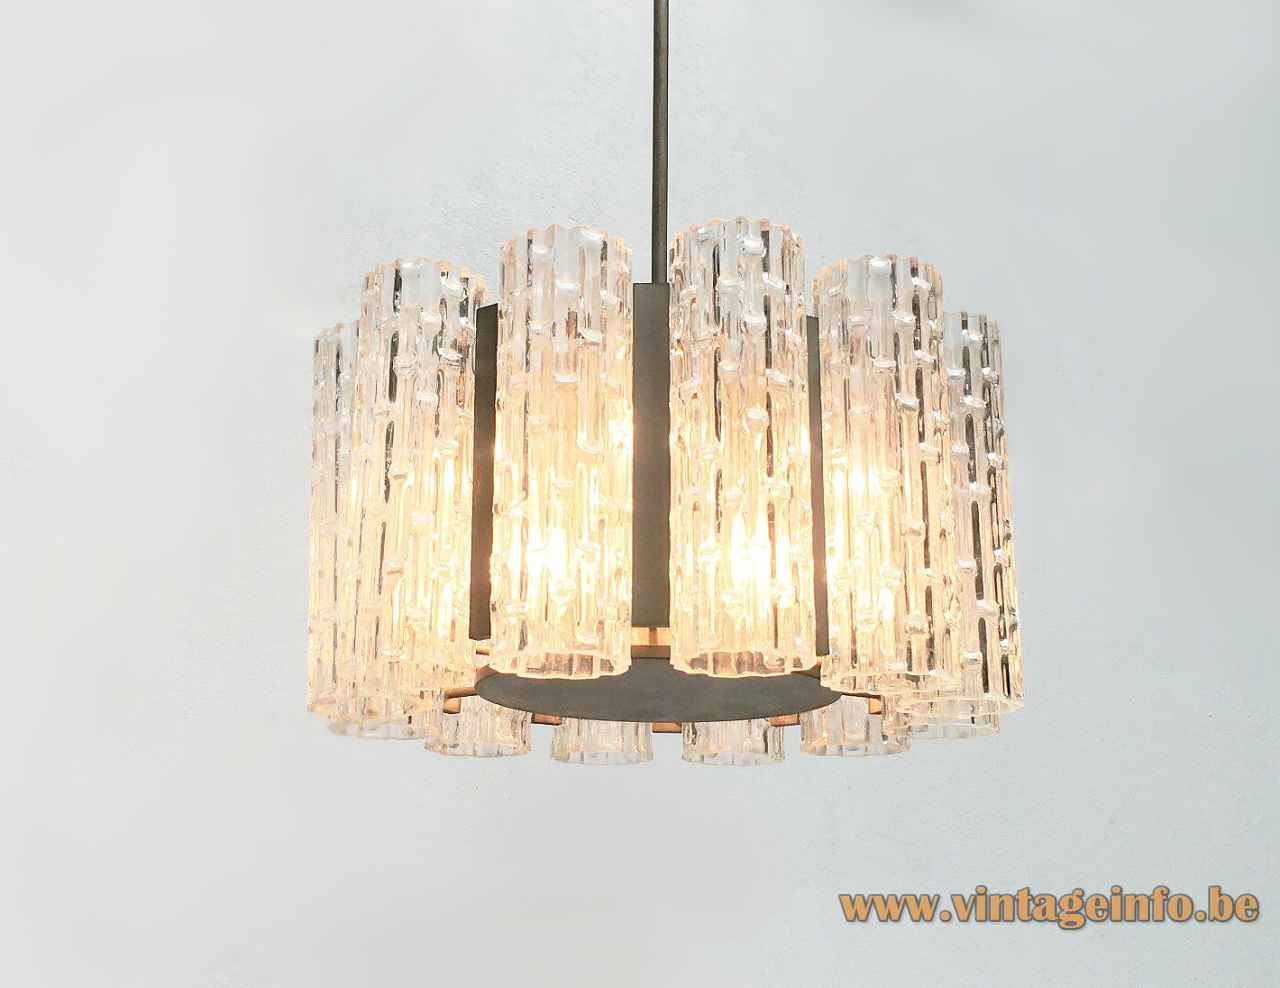 DORIA big glass tubes chandelier embossed ring lampshade metal disc & rod 1960s 1970s Germany E14 sockets